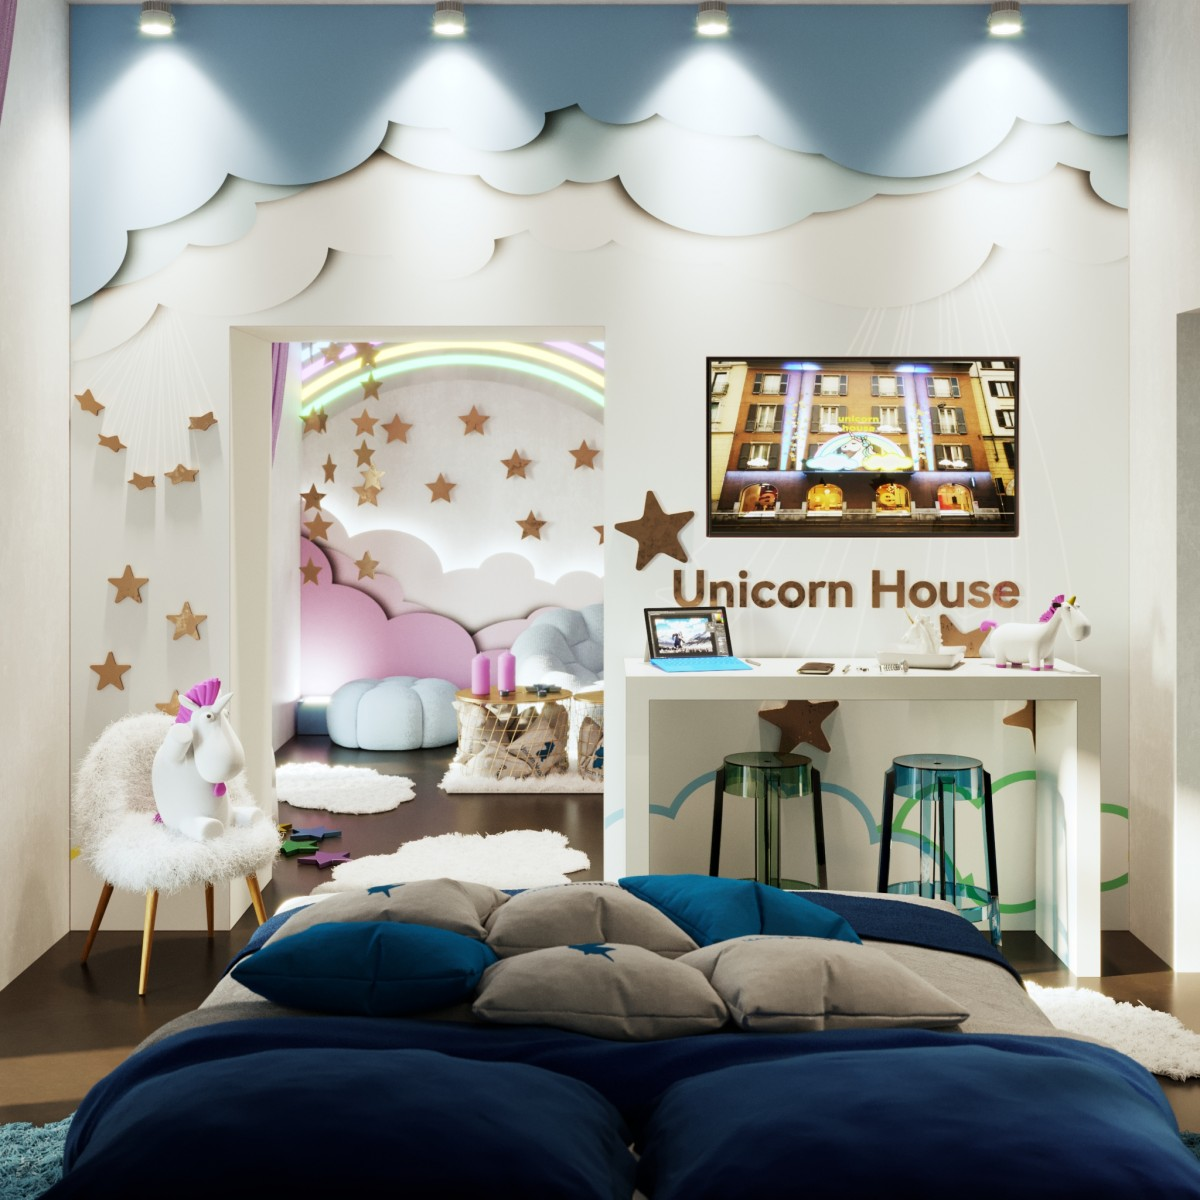 Booking.com Unicorn House